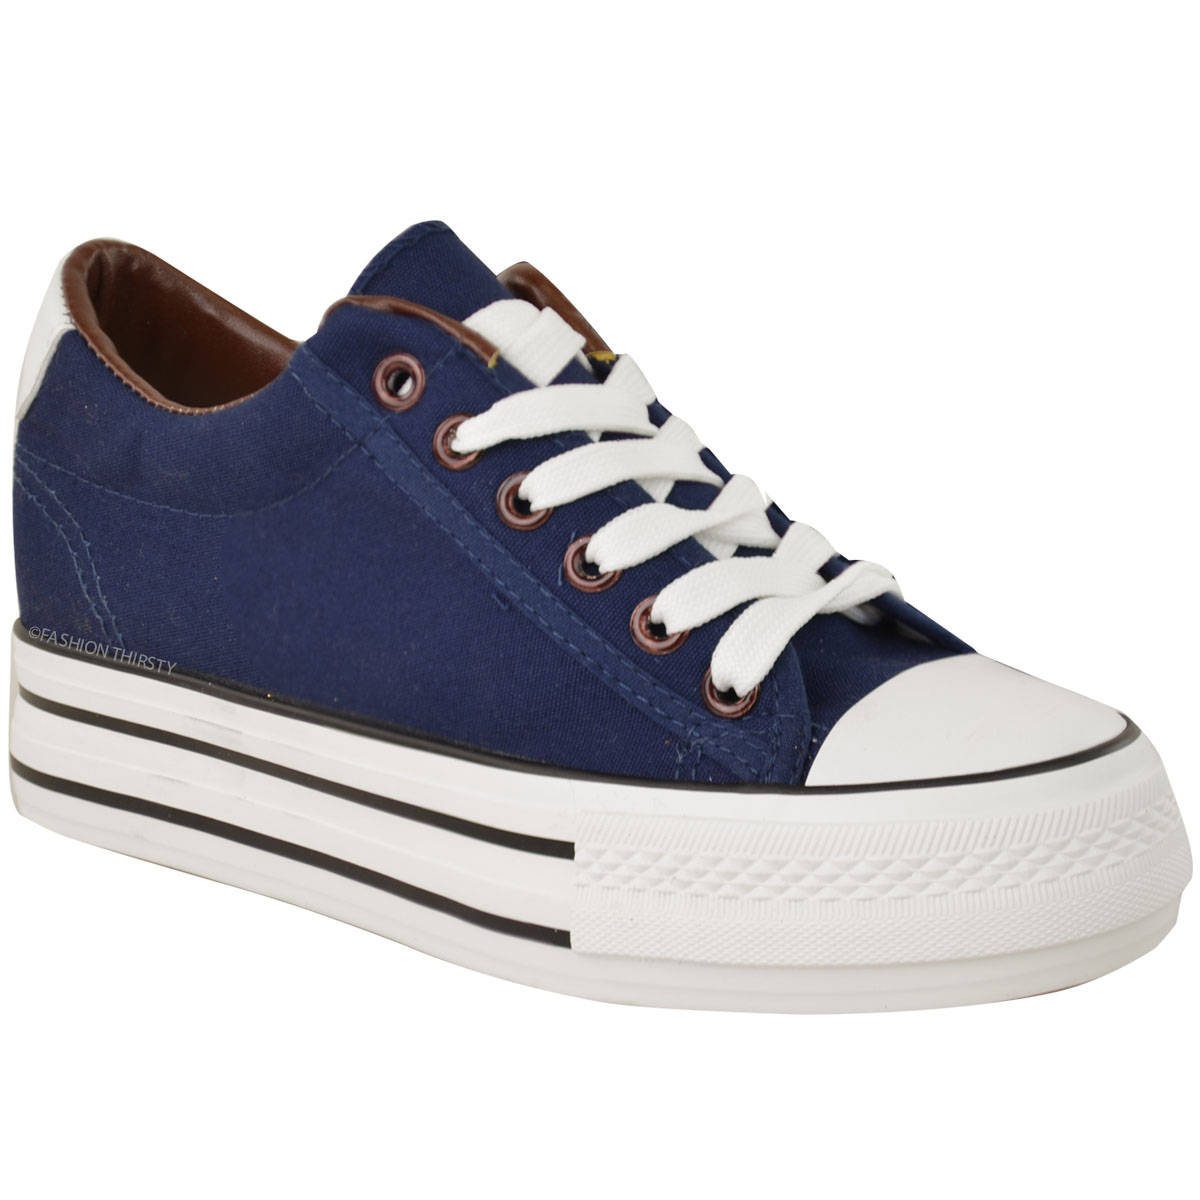 Find great deals on eBay for canvas trainers women. Shop with confidence.